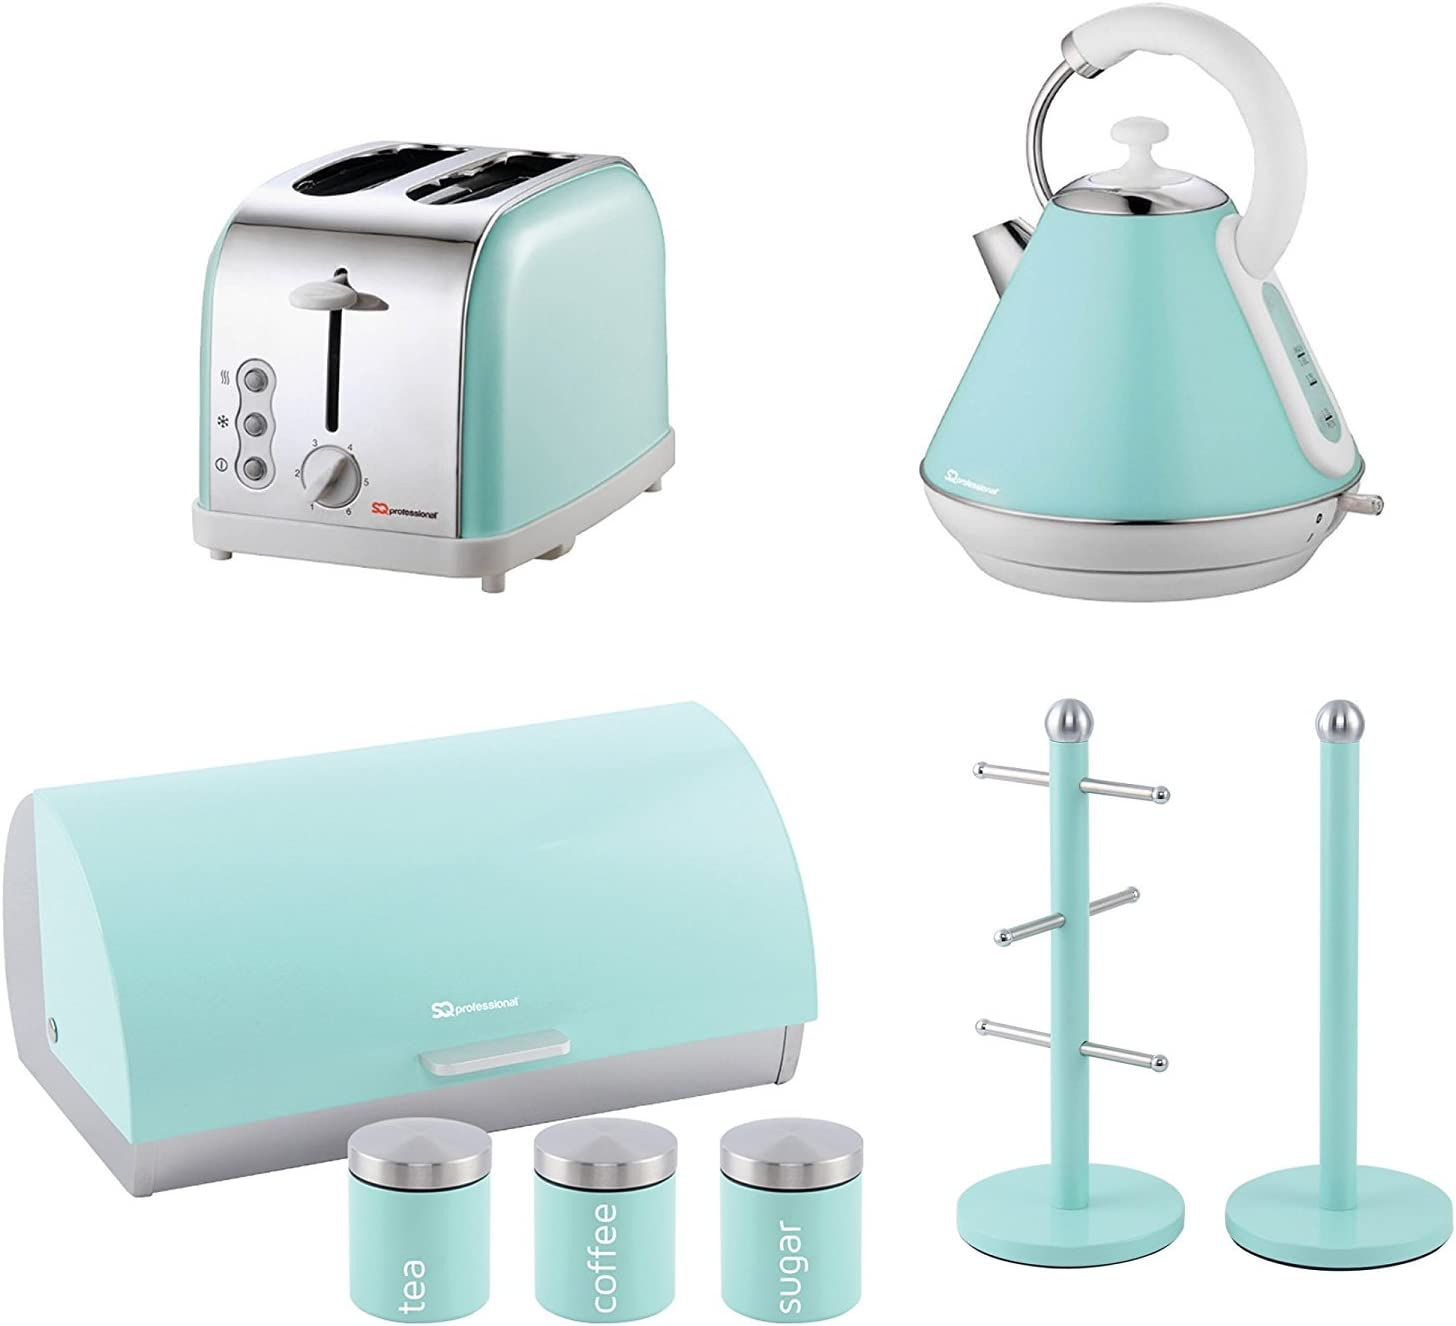 Matching Kitchen Set of Four items: Toaster, Kettle, Bread bin and  canisters and Mug Tree and Kitchen Roll Holder Stand Set in Light Blue,  Pink or